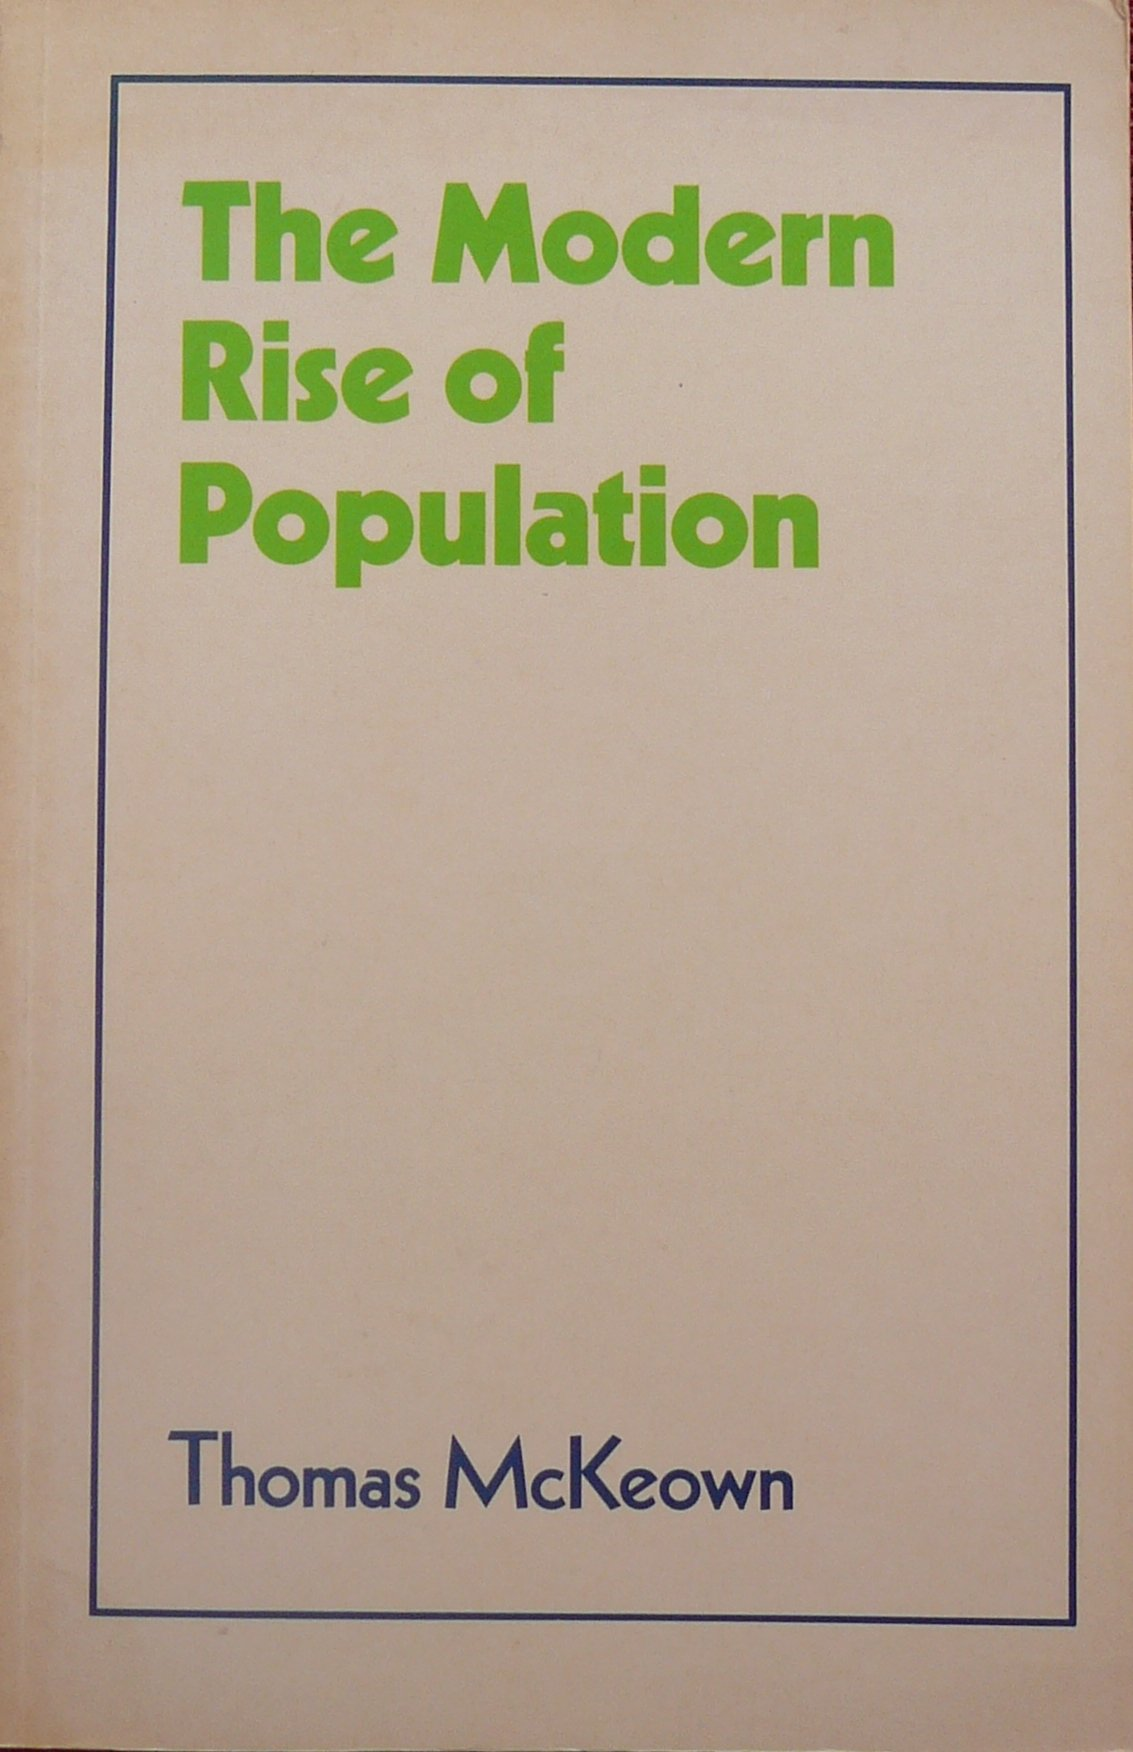 The Modern Rise of Population